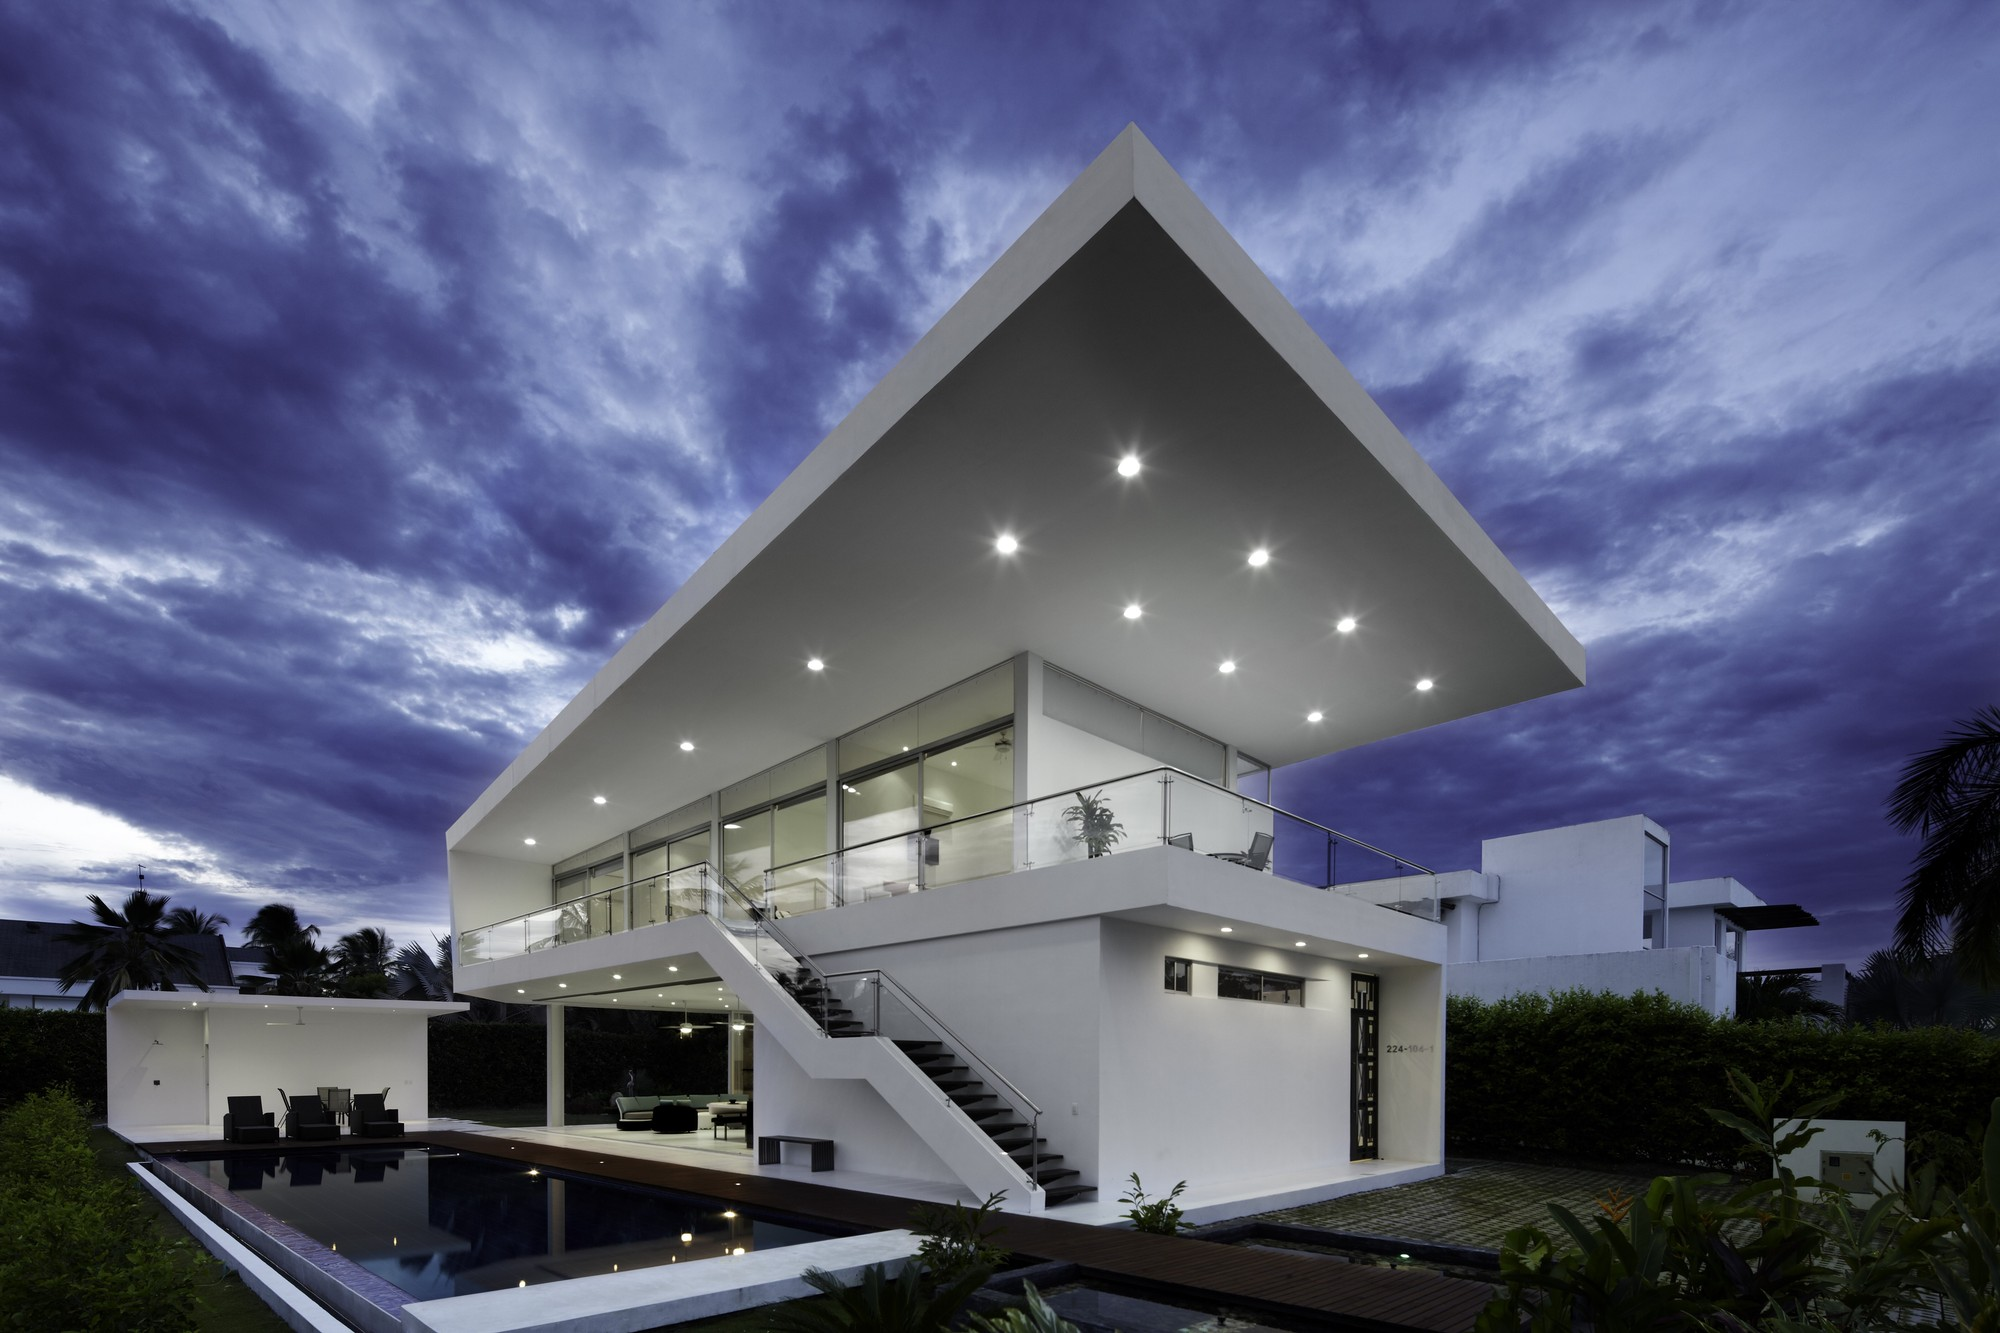 Gm house giovanni moreno arquitectos archdaily